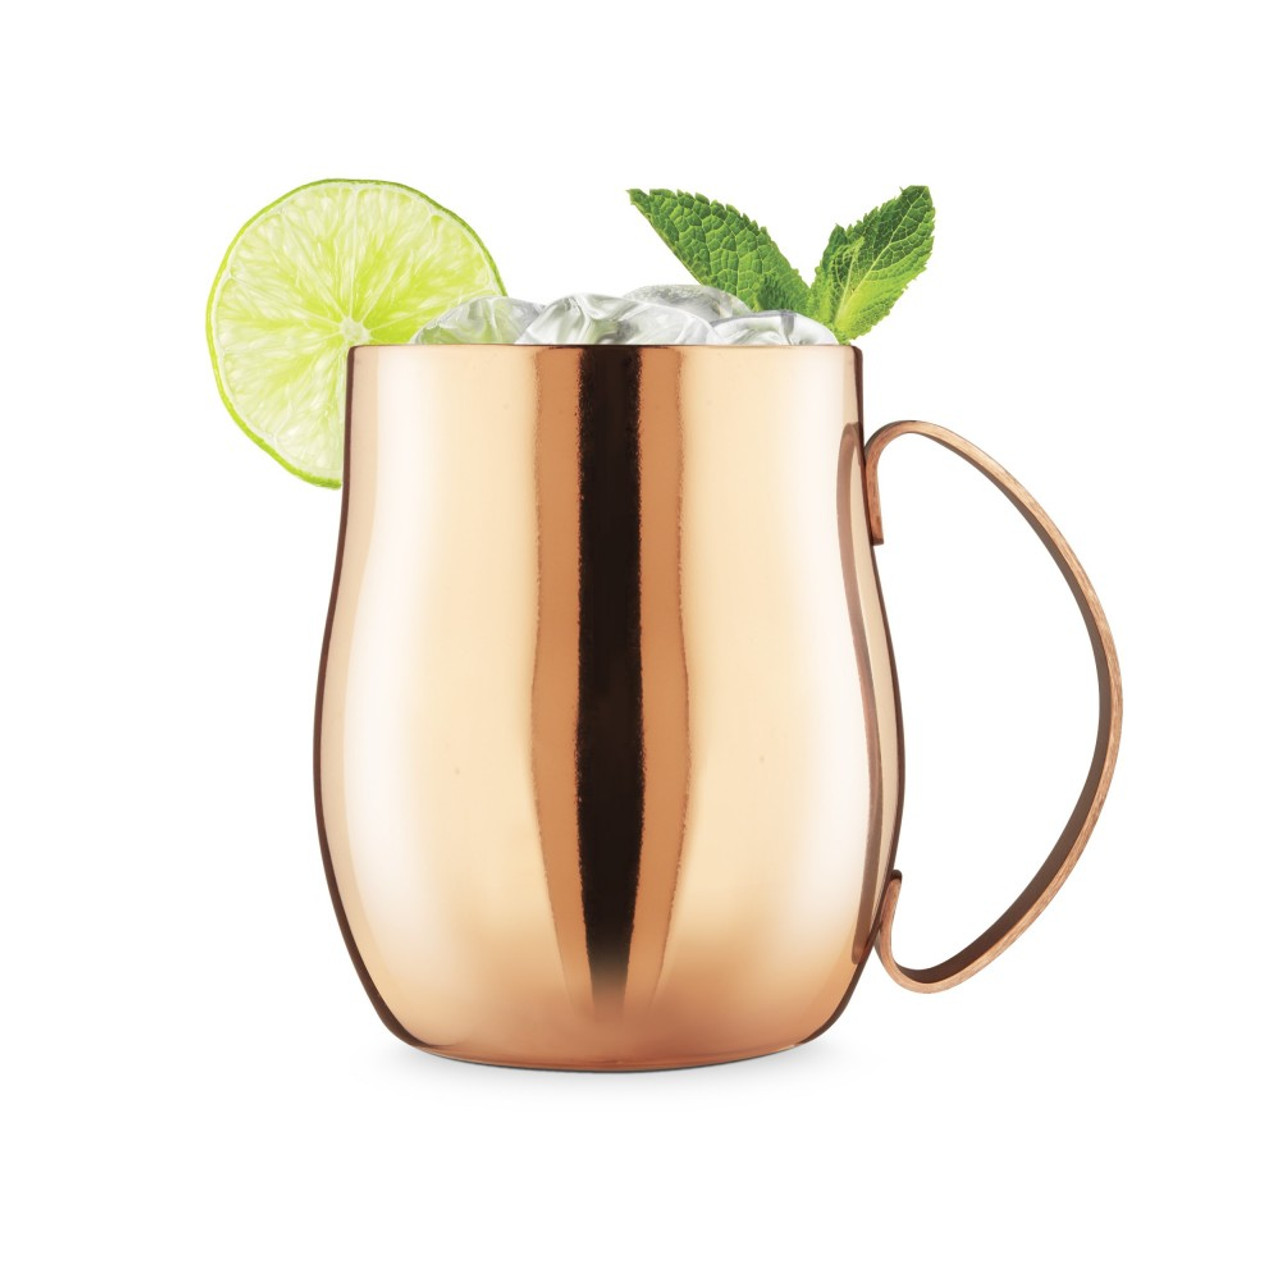 FINAL TOUCH DOUBLE-WALLED MOSCOW MULE